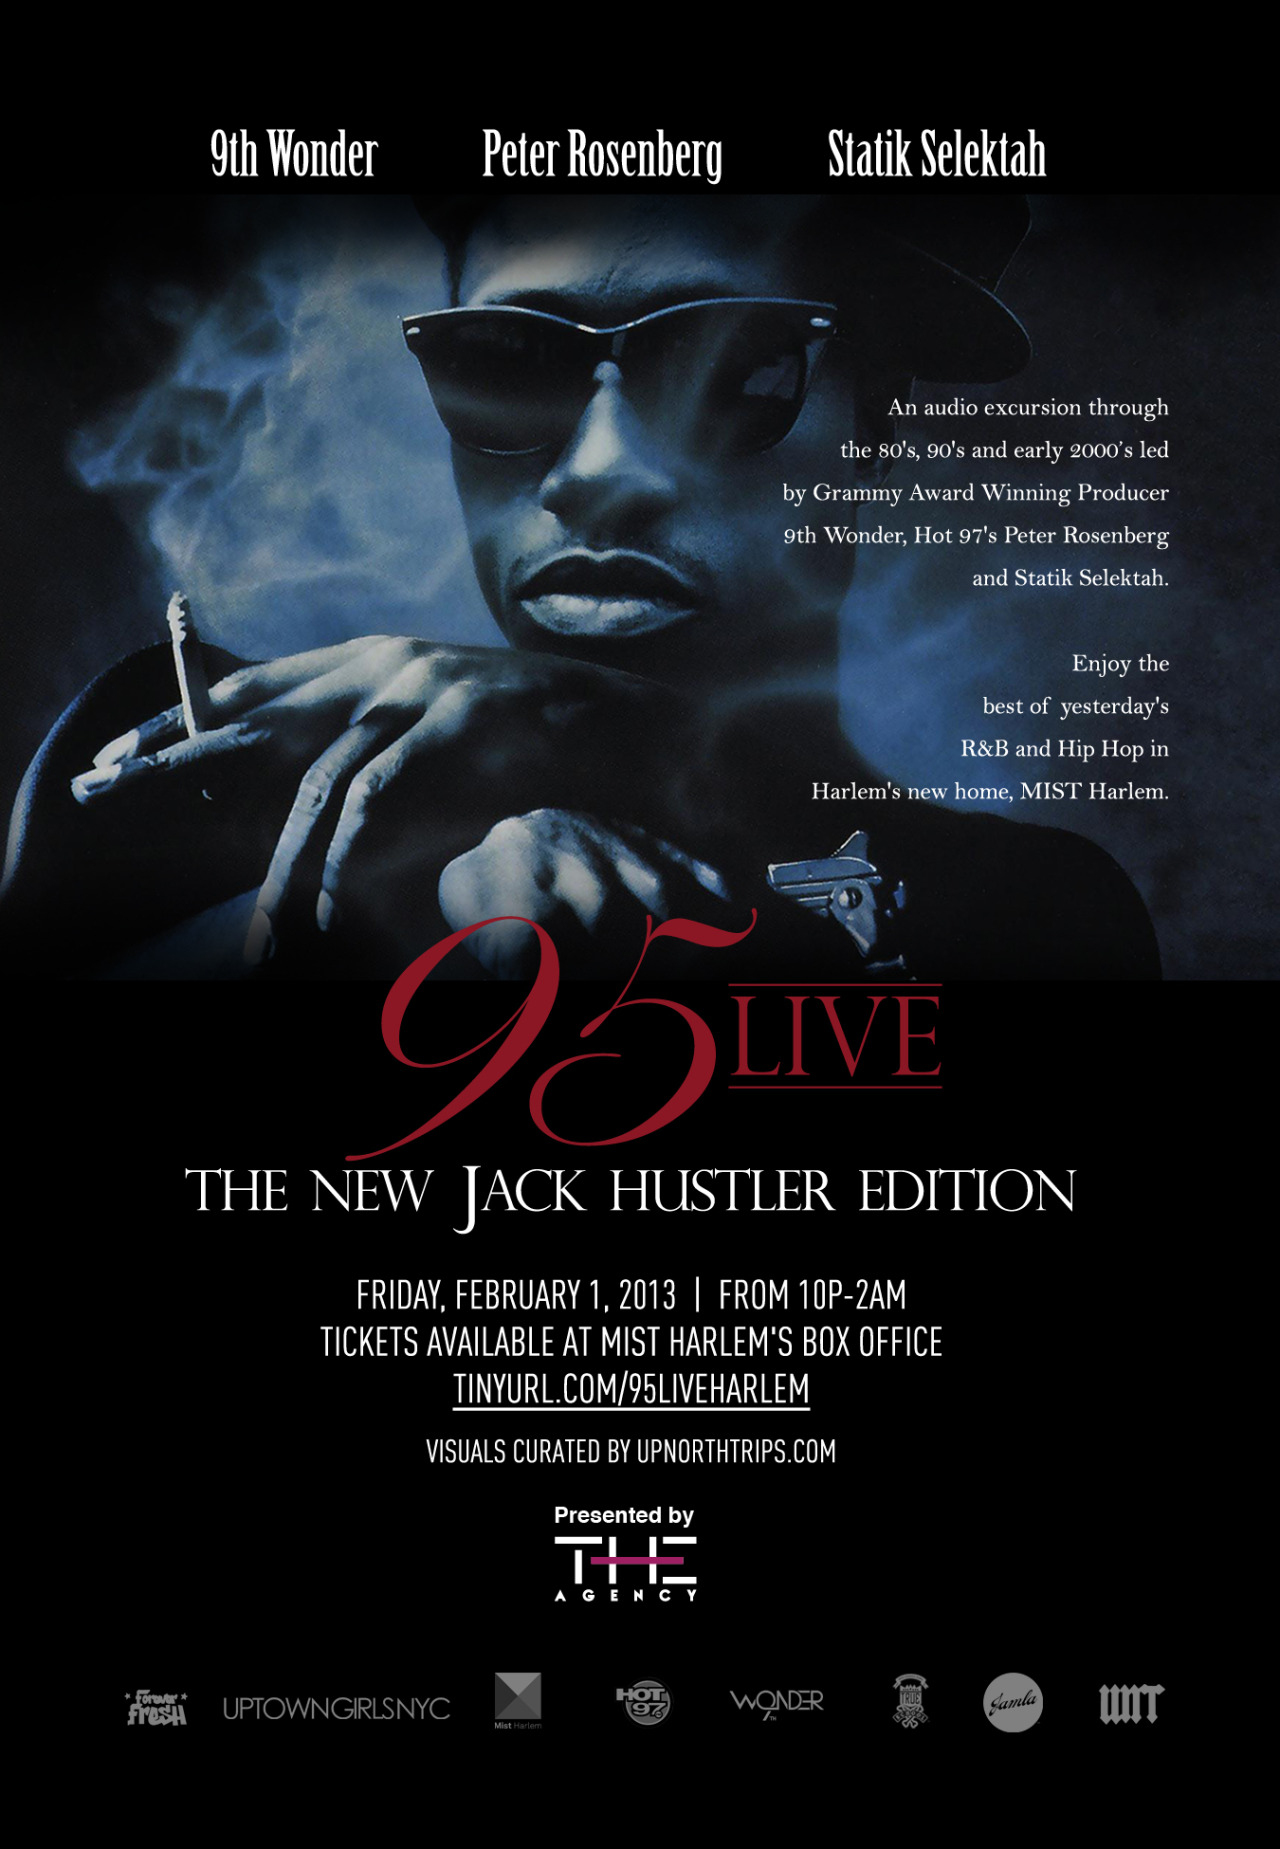 Tonight. #95Live: The New Jack Hustler Edition. Flicks curated by yours truly.